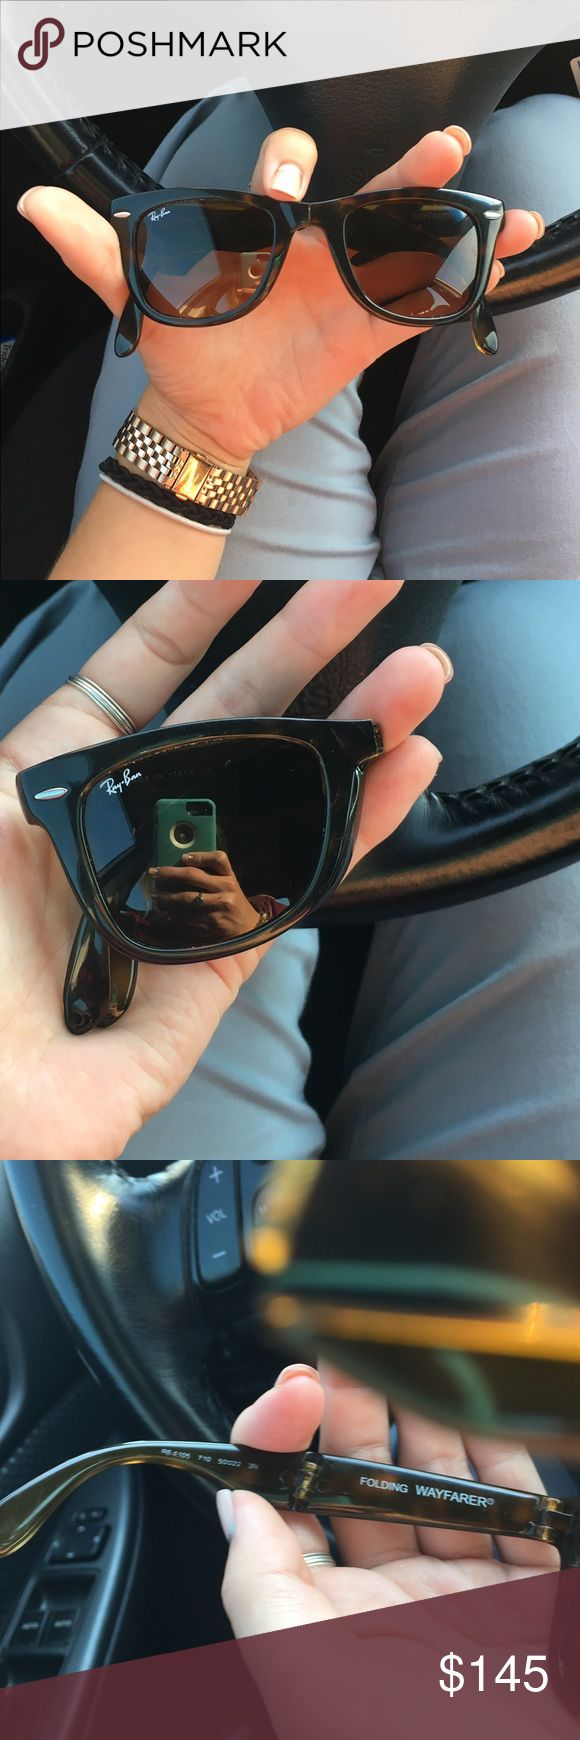 polarized ray ban sunglasses sale  17 Best ideas about Ray Ban Polarized on Pinterest